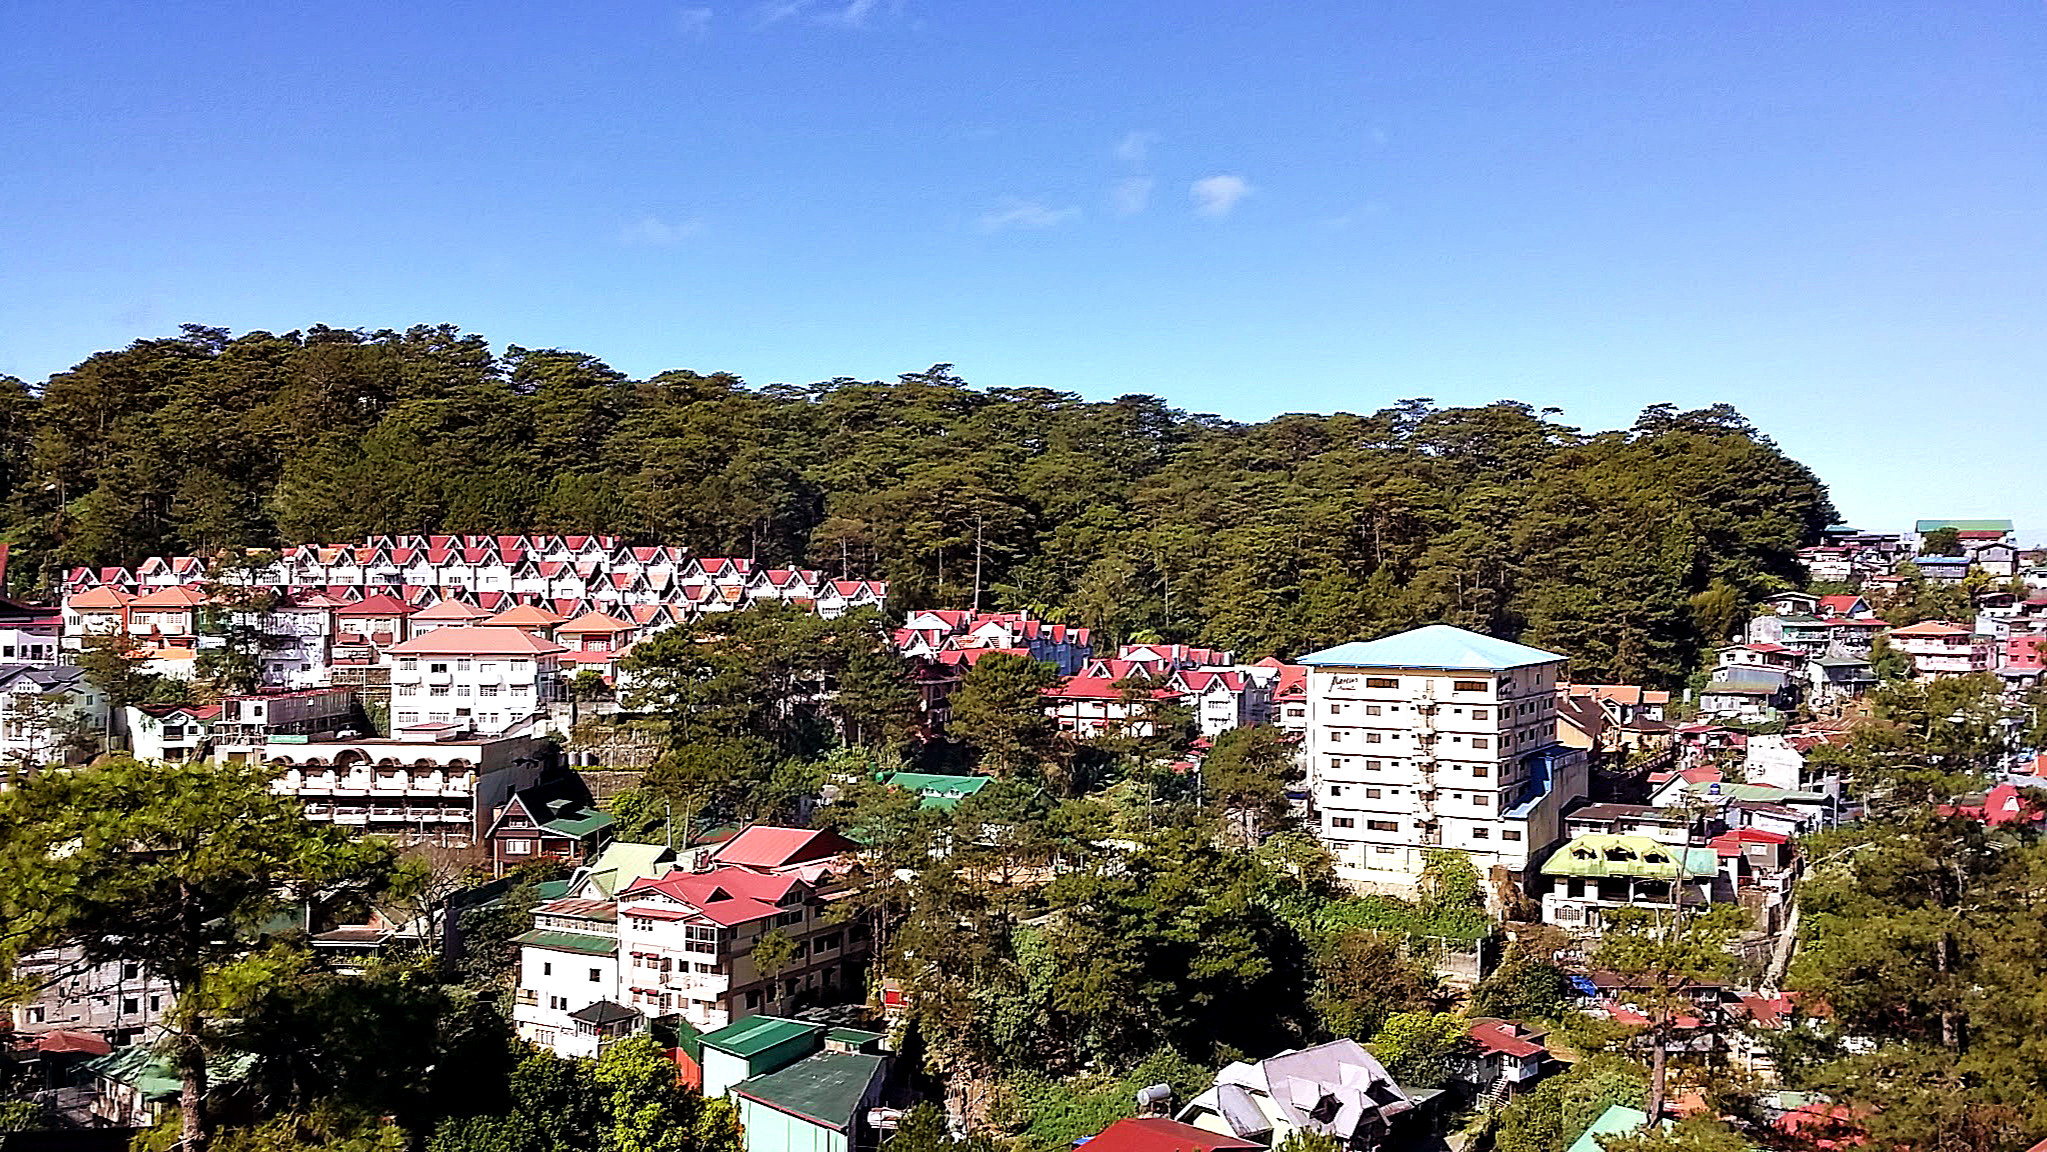 Baguio City, northern Luzon, Philippines